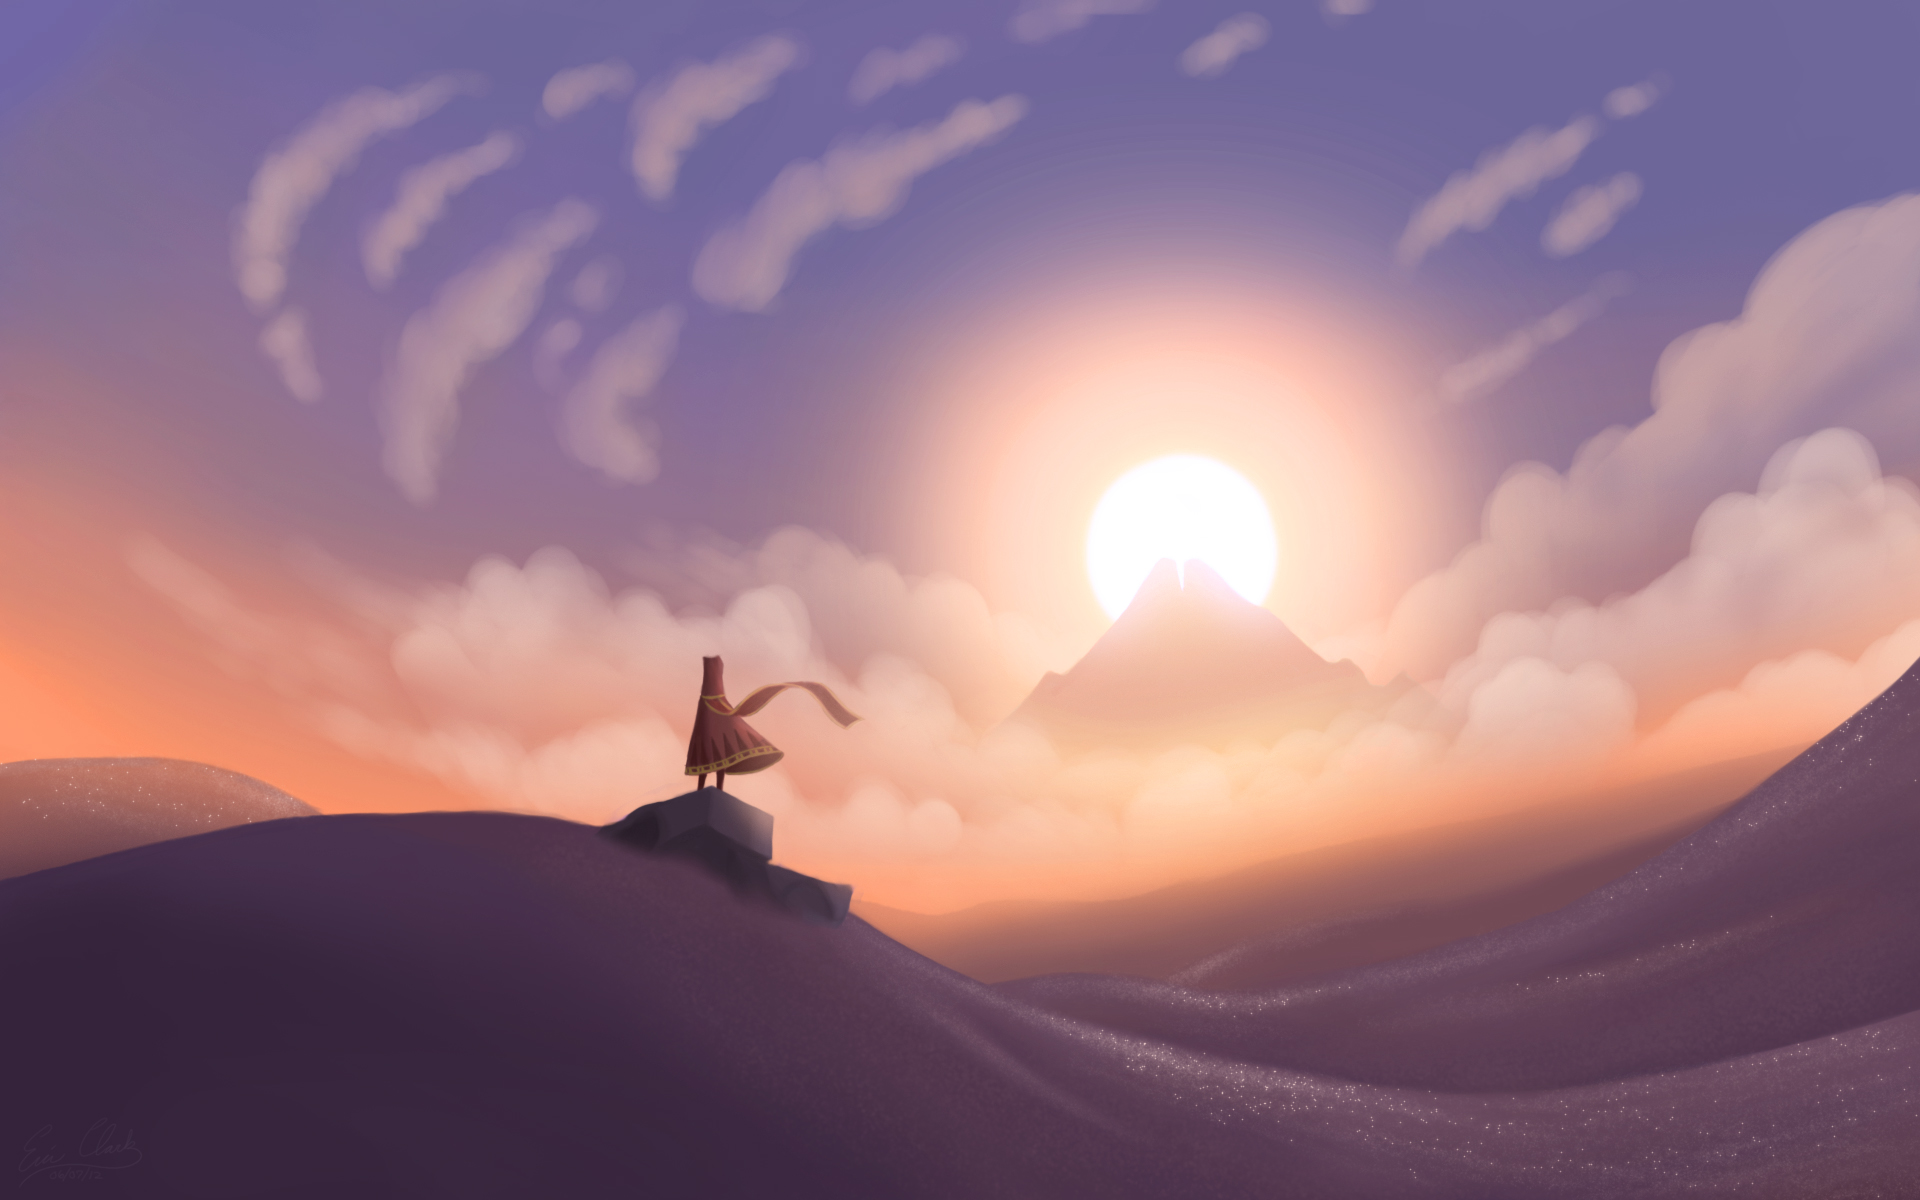 Journey Sunset by Sawuinhaff